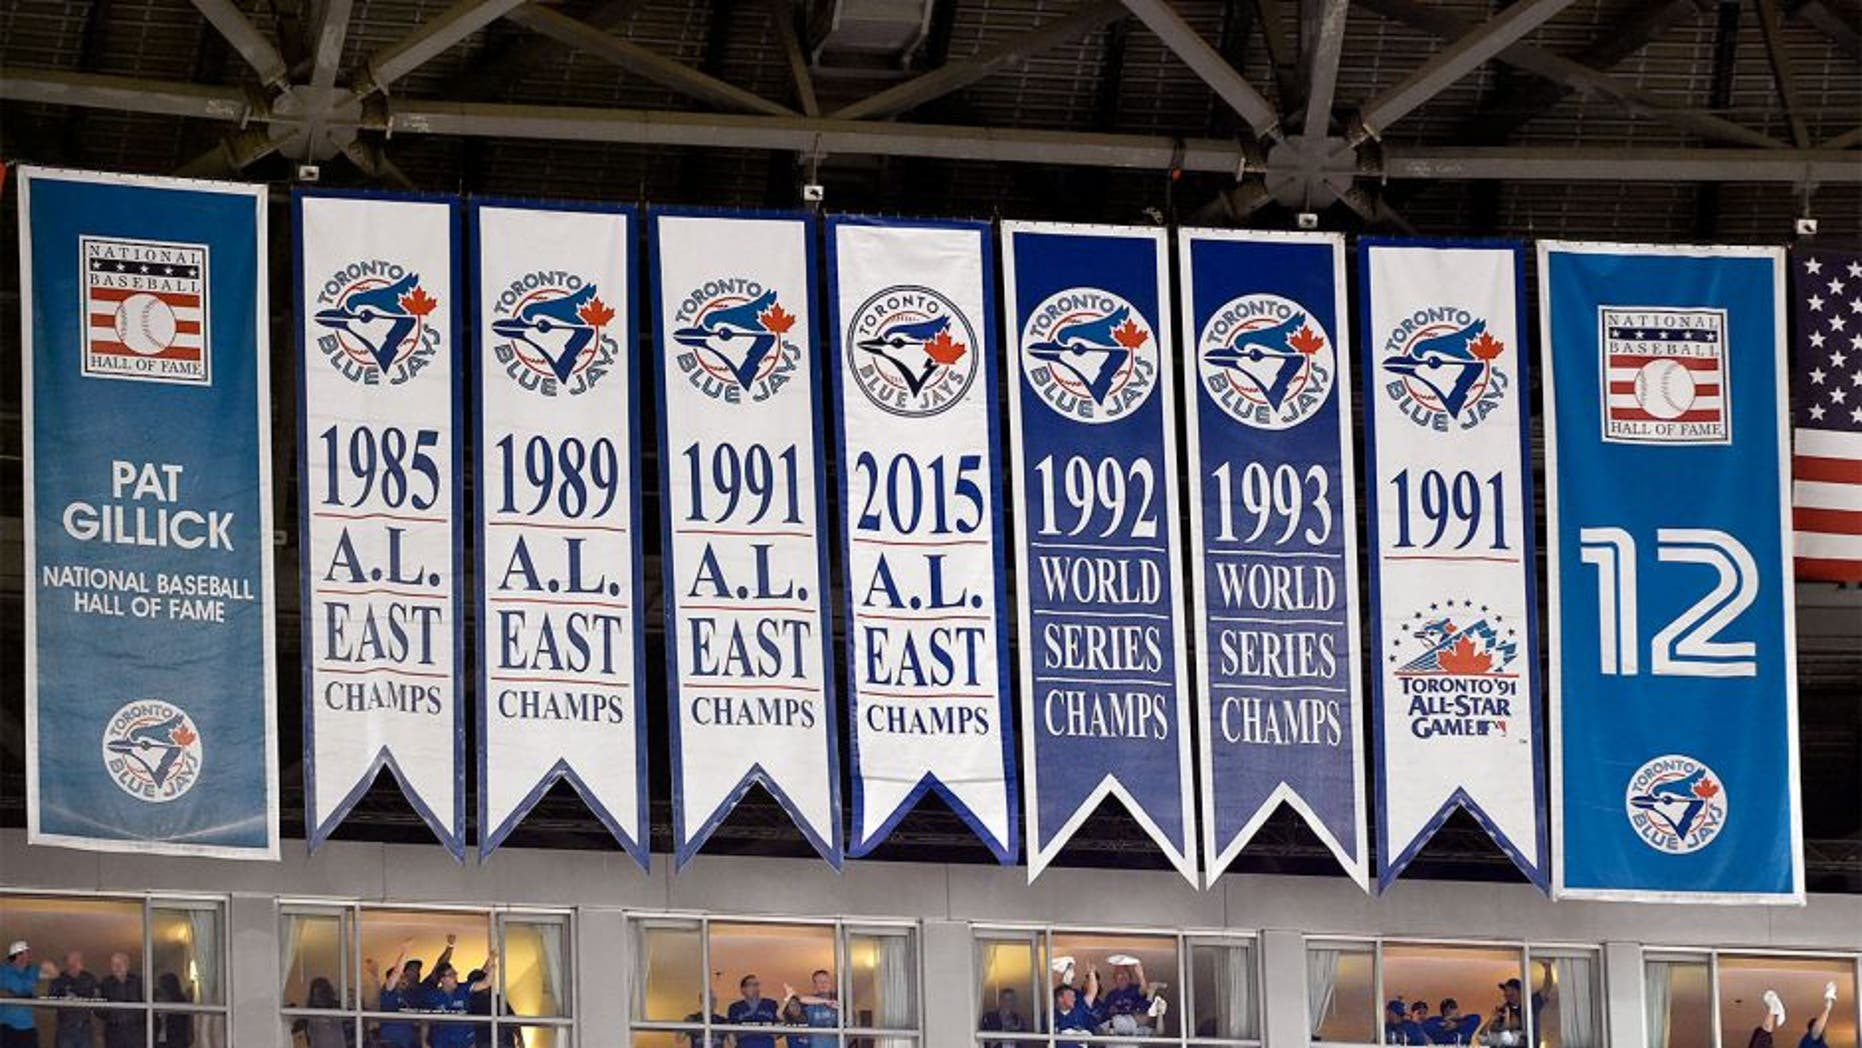 Oct 8, 2015; Toronto, Ontario, CAN; General view of Toronto Blue Jays pennants for past American League and World Series championships are seen prior to game one of the ALDS against the Texas Rangers at Rogers Centre. Mandatory Credit: Peter Llewellyn-USA TODAY Sports